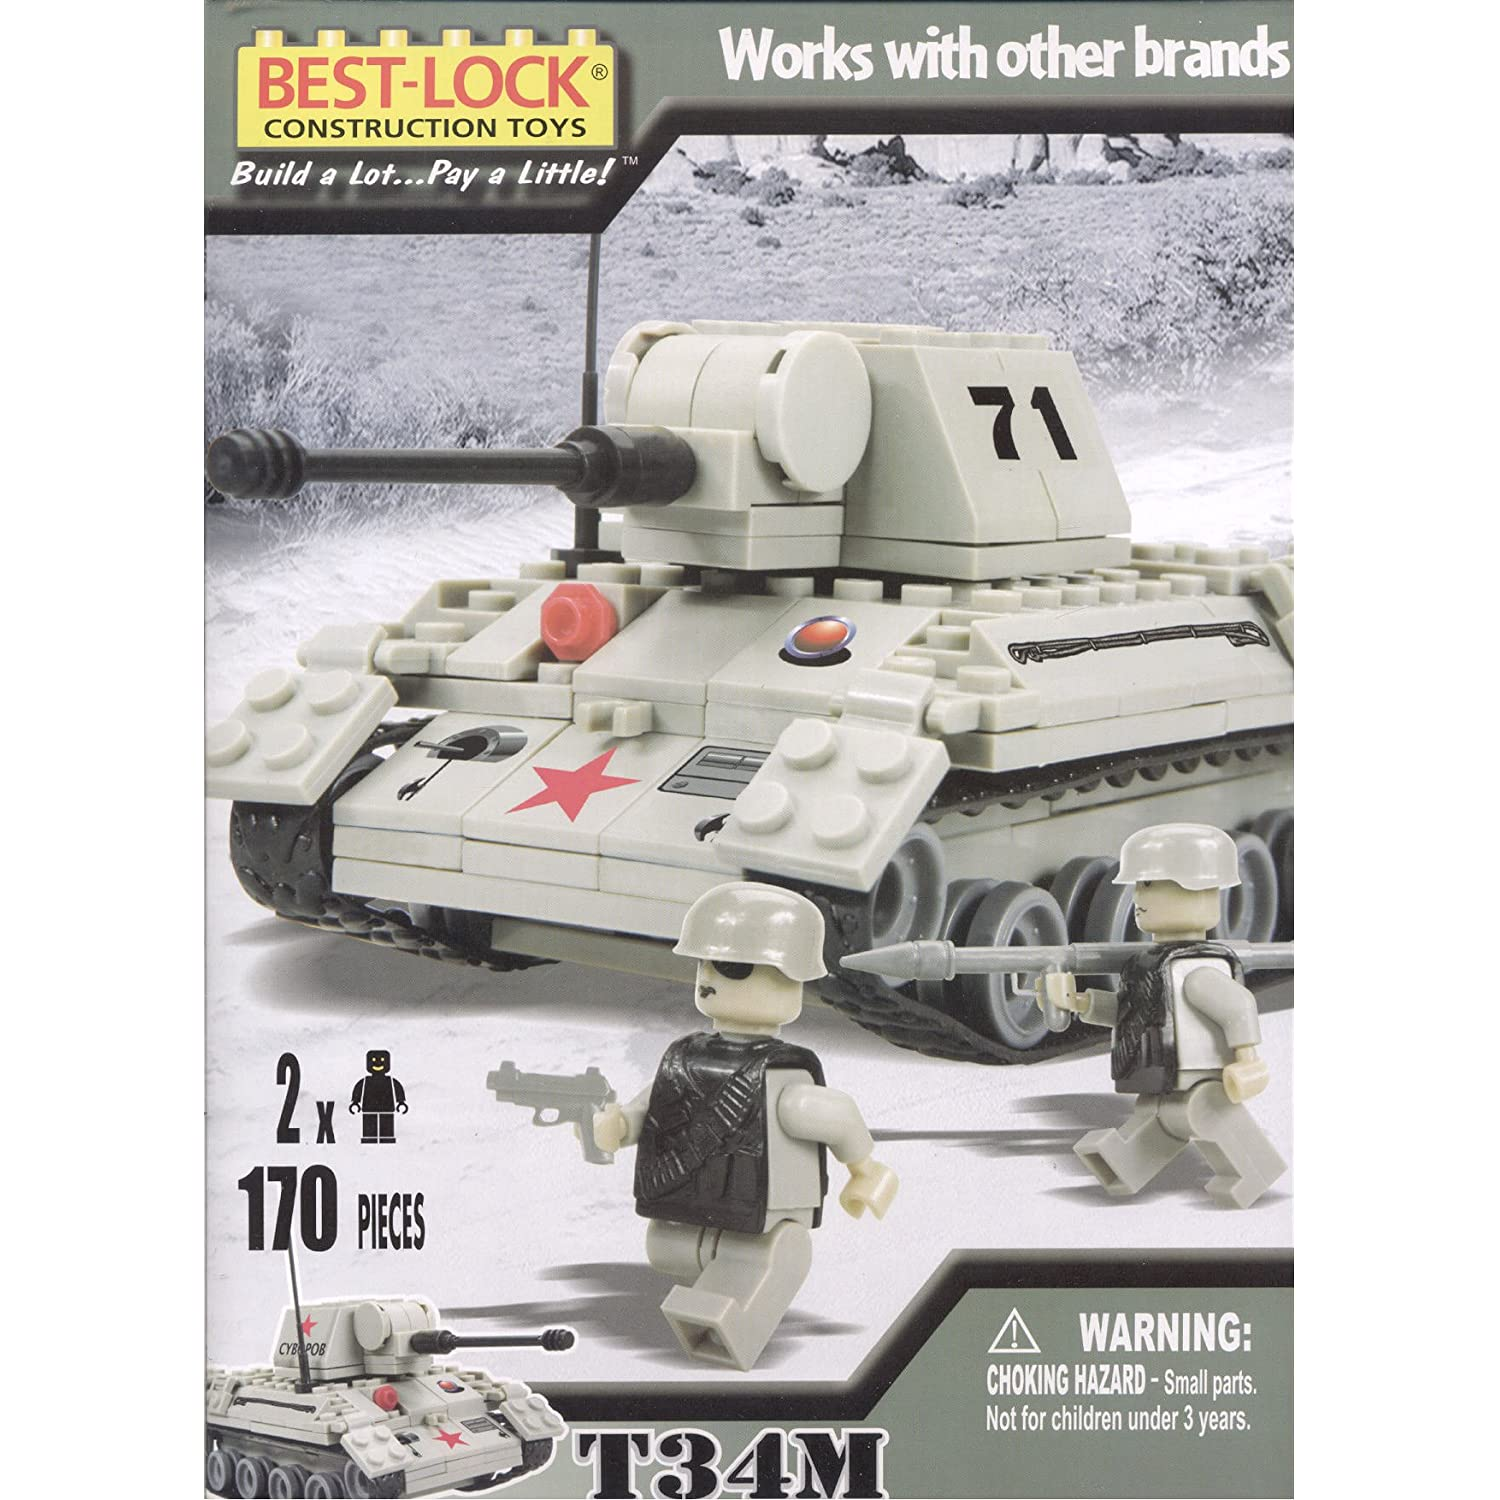 T34 lego tank? I did not know   - G503 Military Vehicle